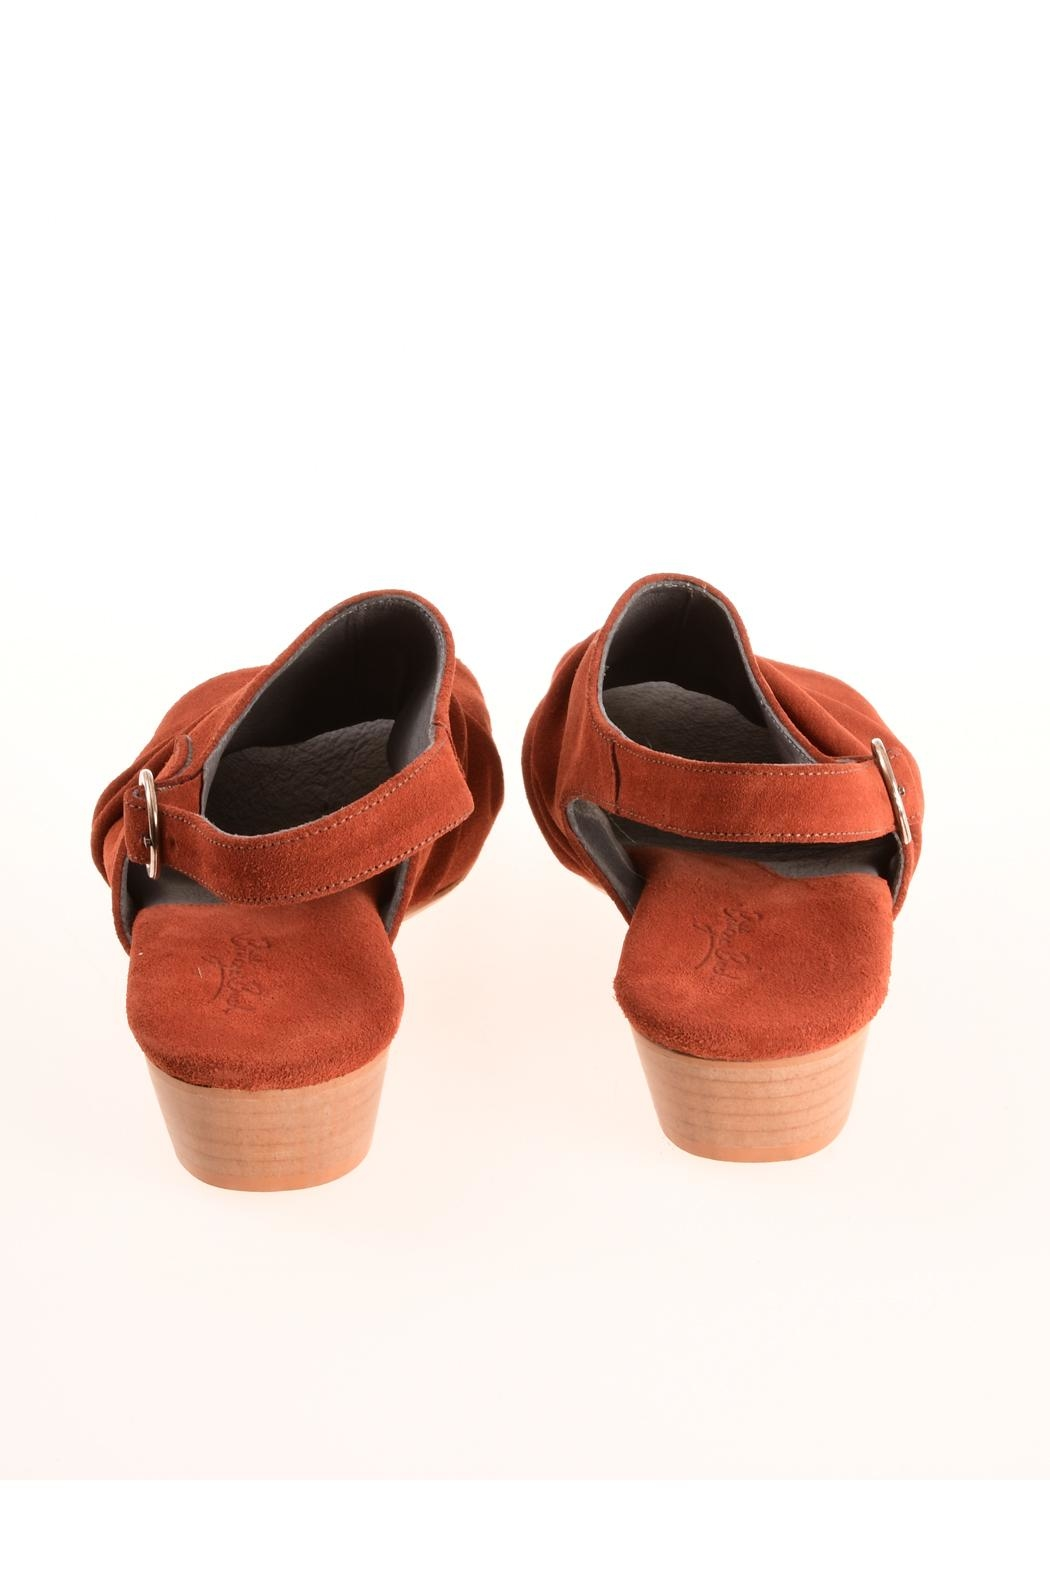 Bottega Bash Orange Suede Sandal - Side Cropped Image